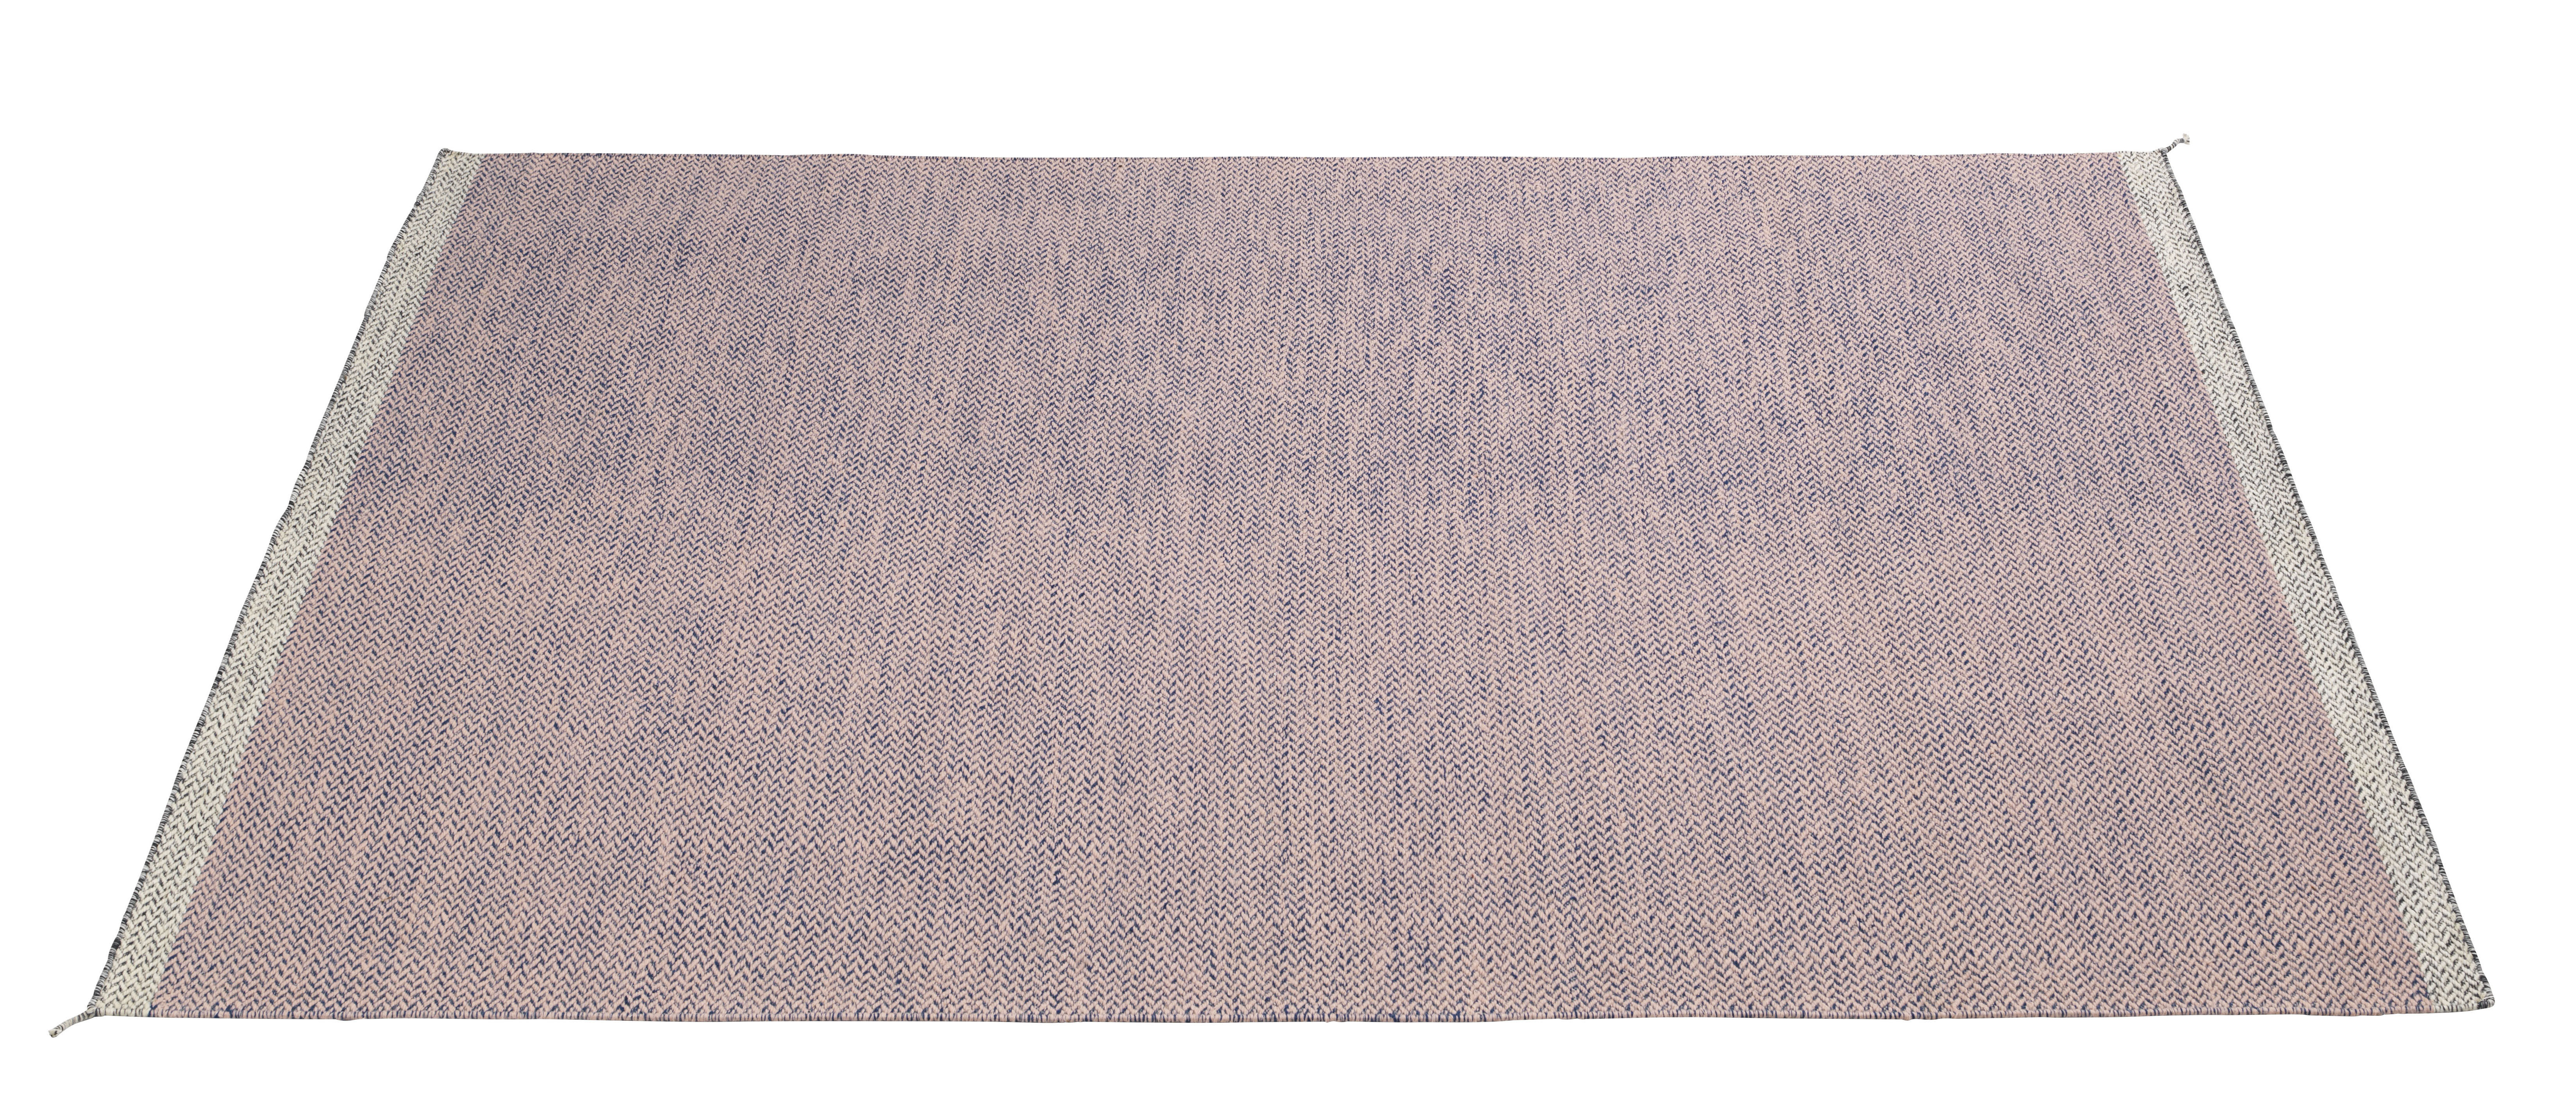 Decoration - Rugs - PLY Rug - 200 x 300cm by Muuto - Pink - Wool